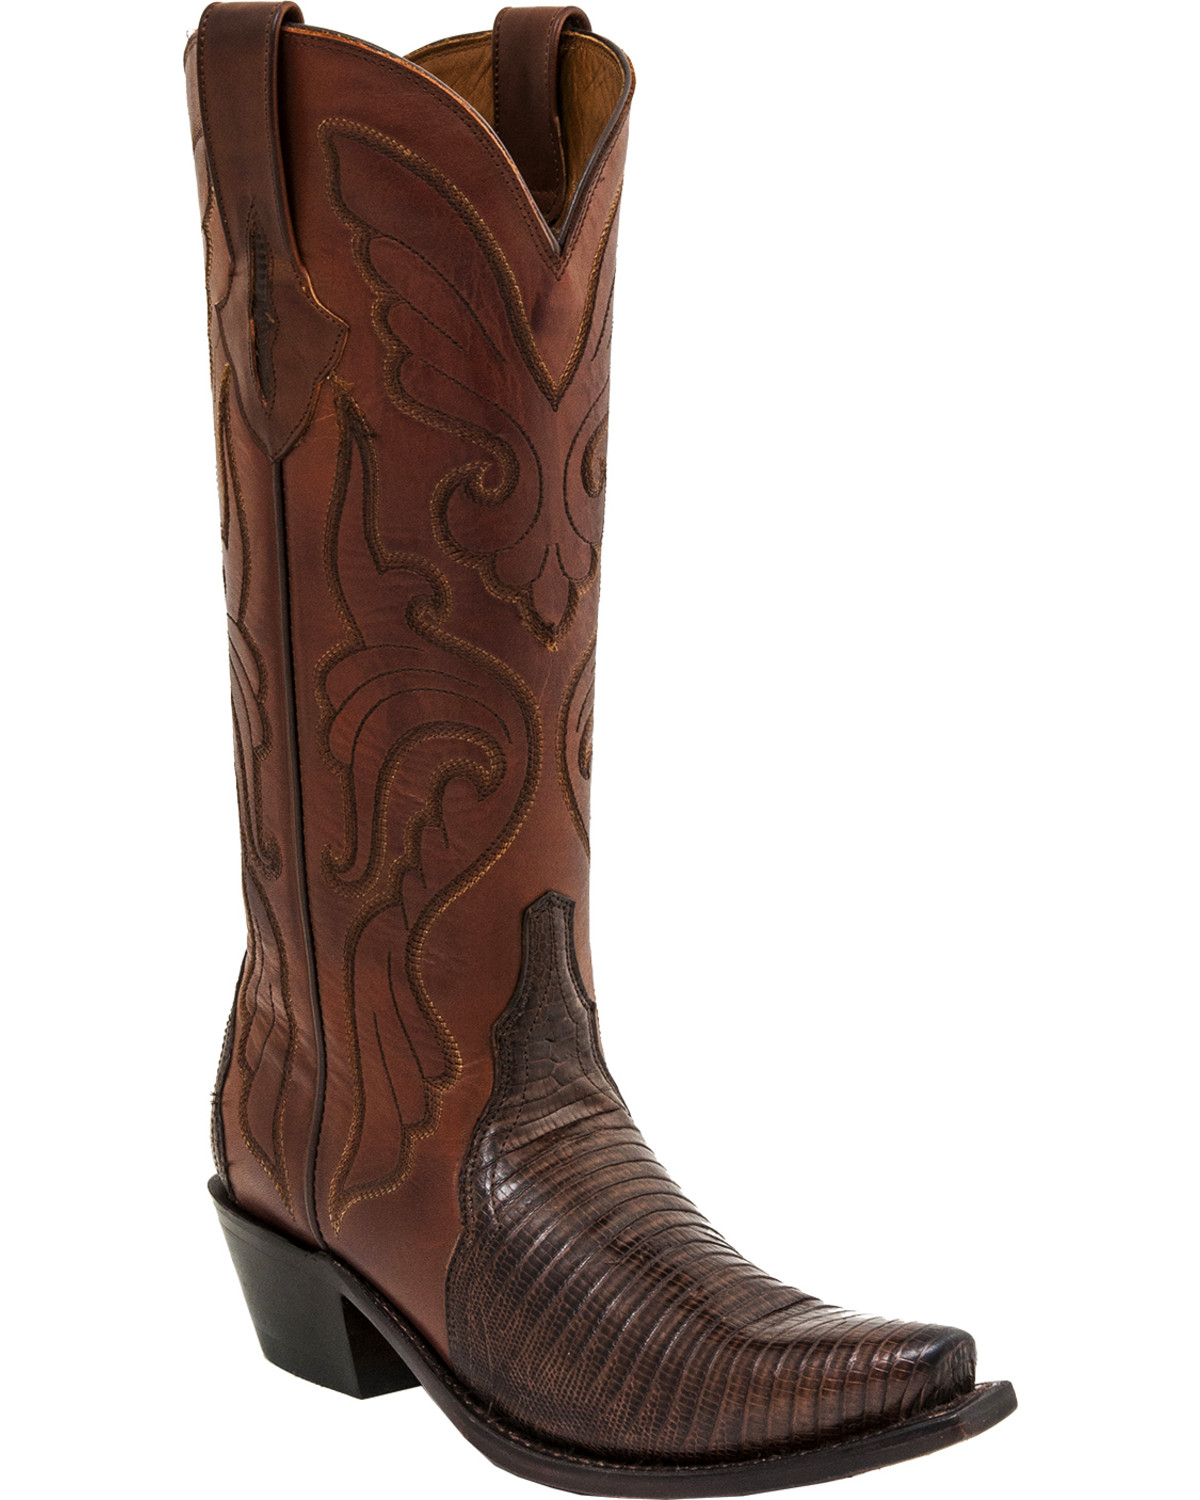 9400f1f4bc128 Zoomed Image Lucchese Handmade Carmen Lizard Triad Cowgirl Boots - Snip Toe  , Walnut, hi-res